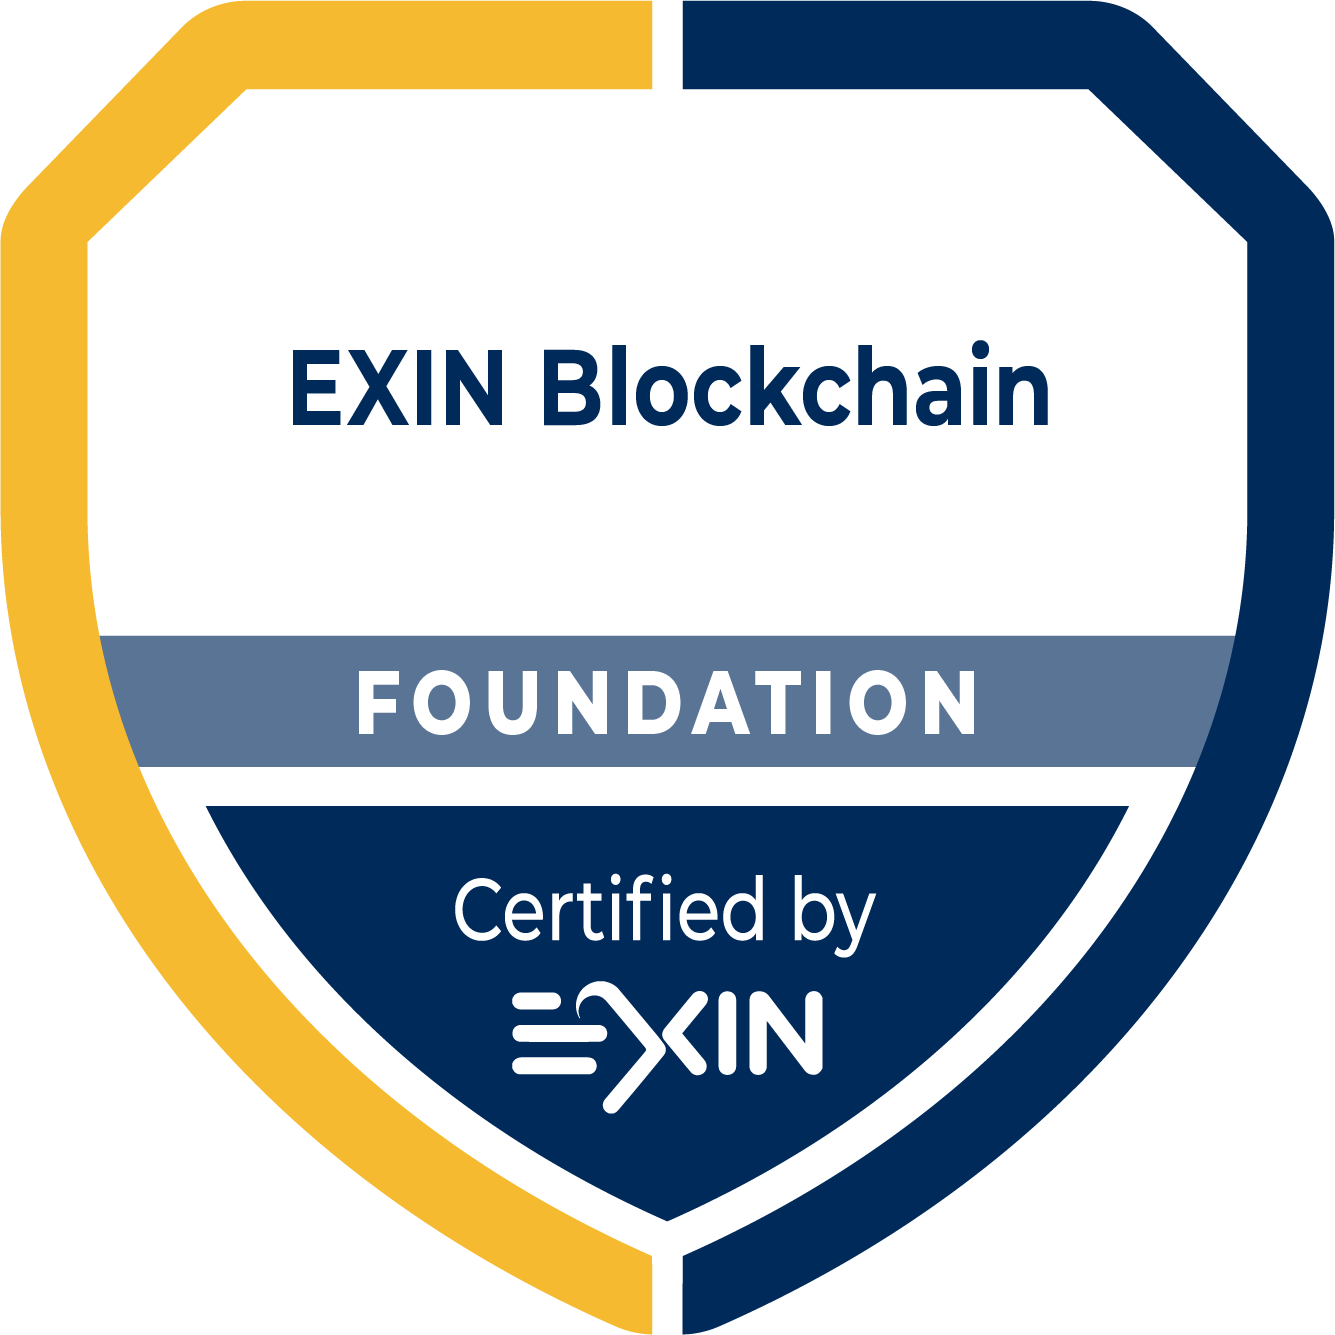 EXIN Blockchain Foundation